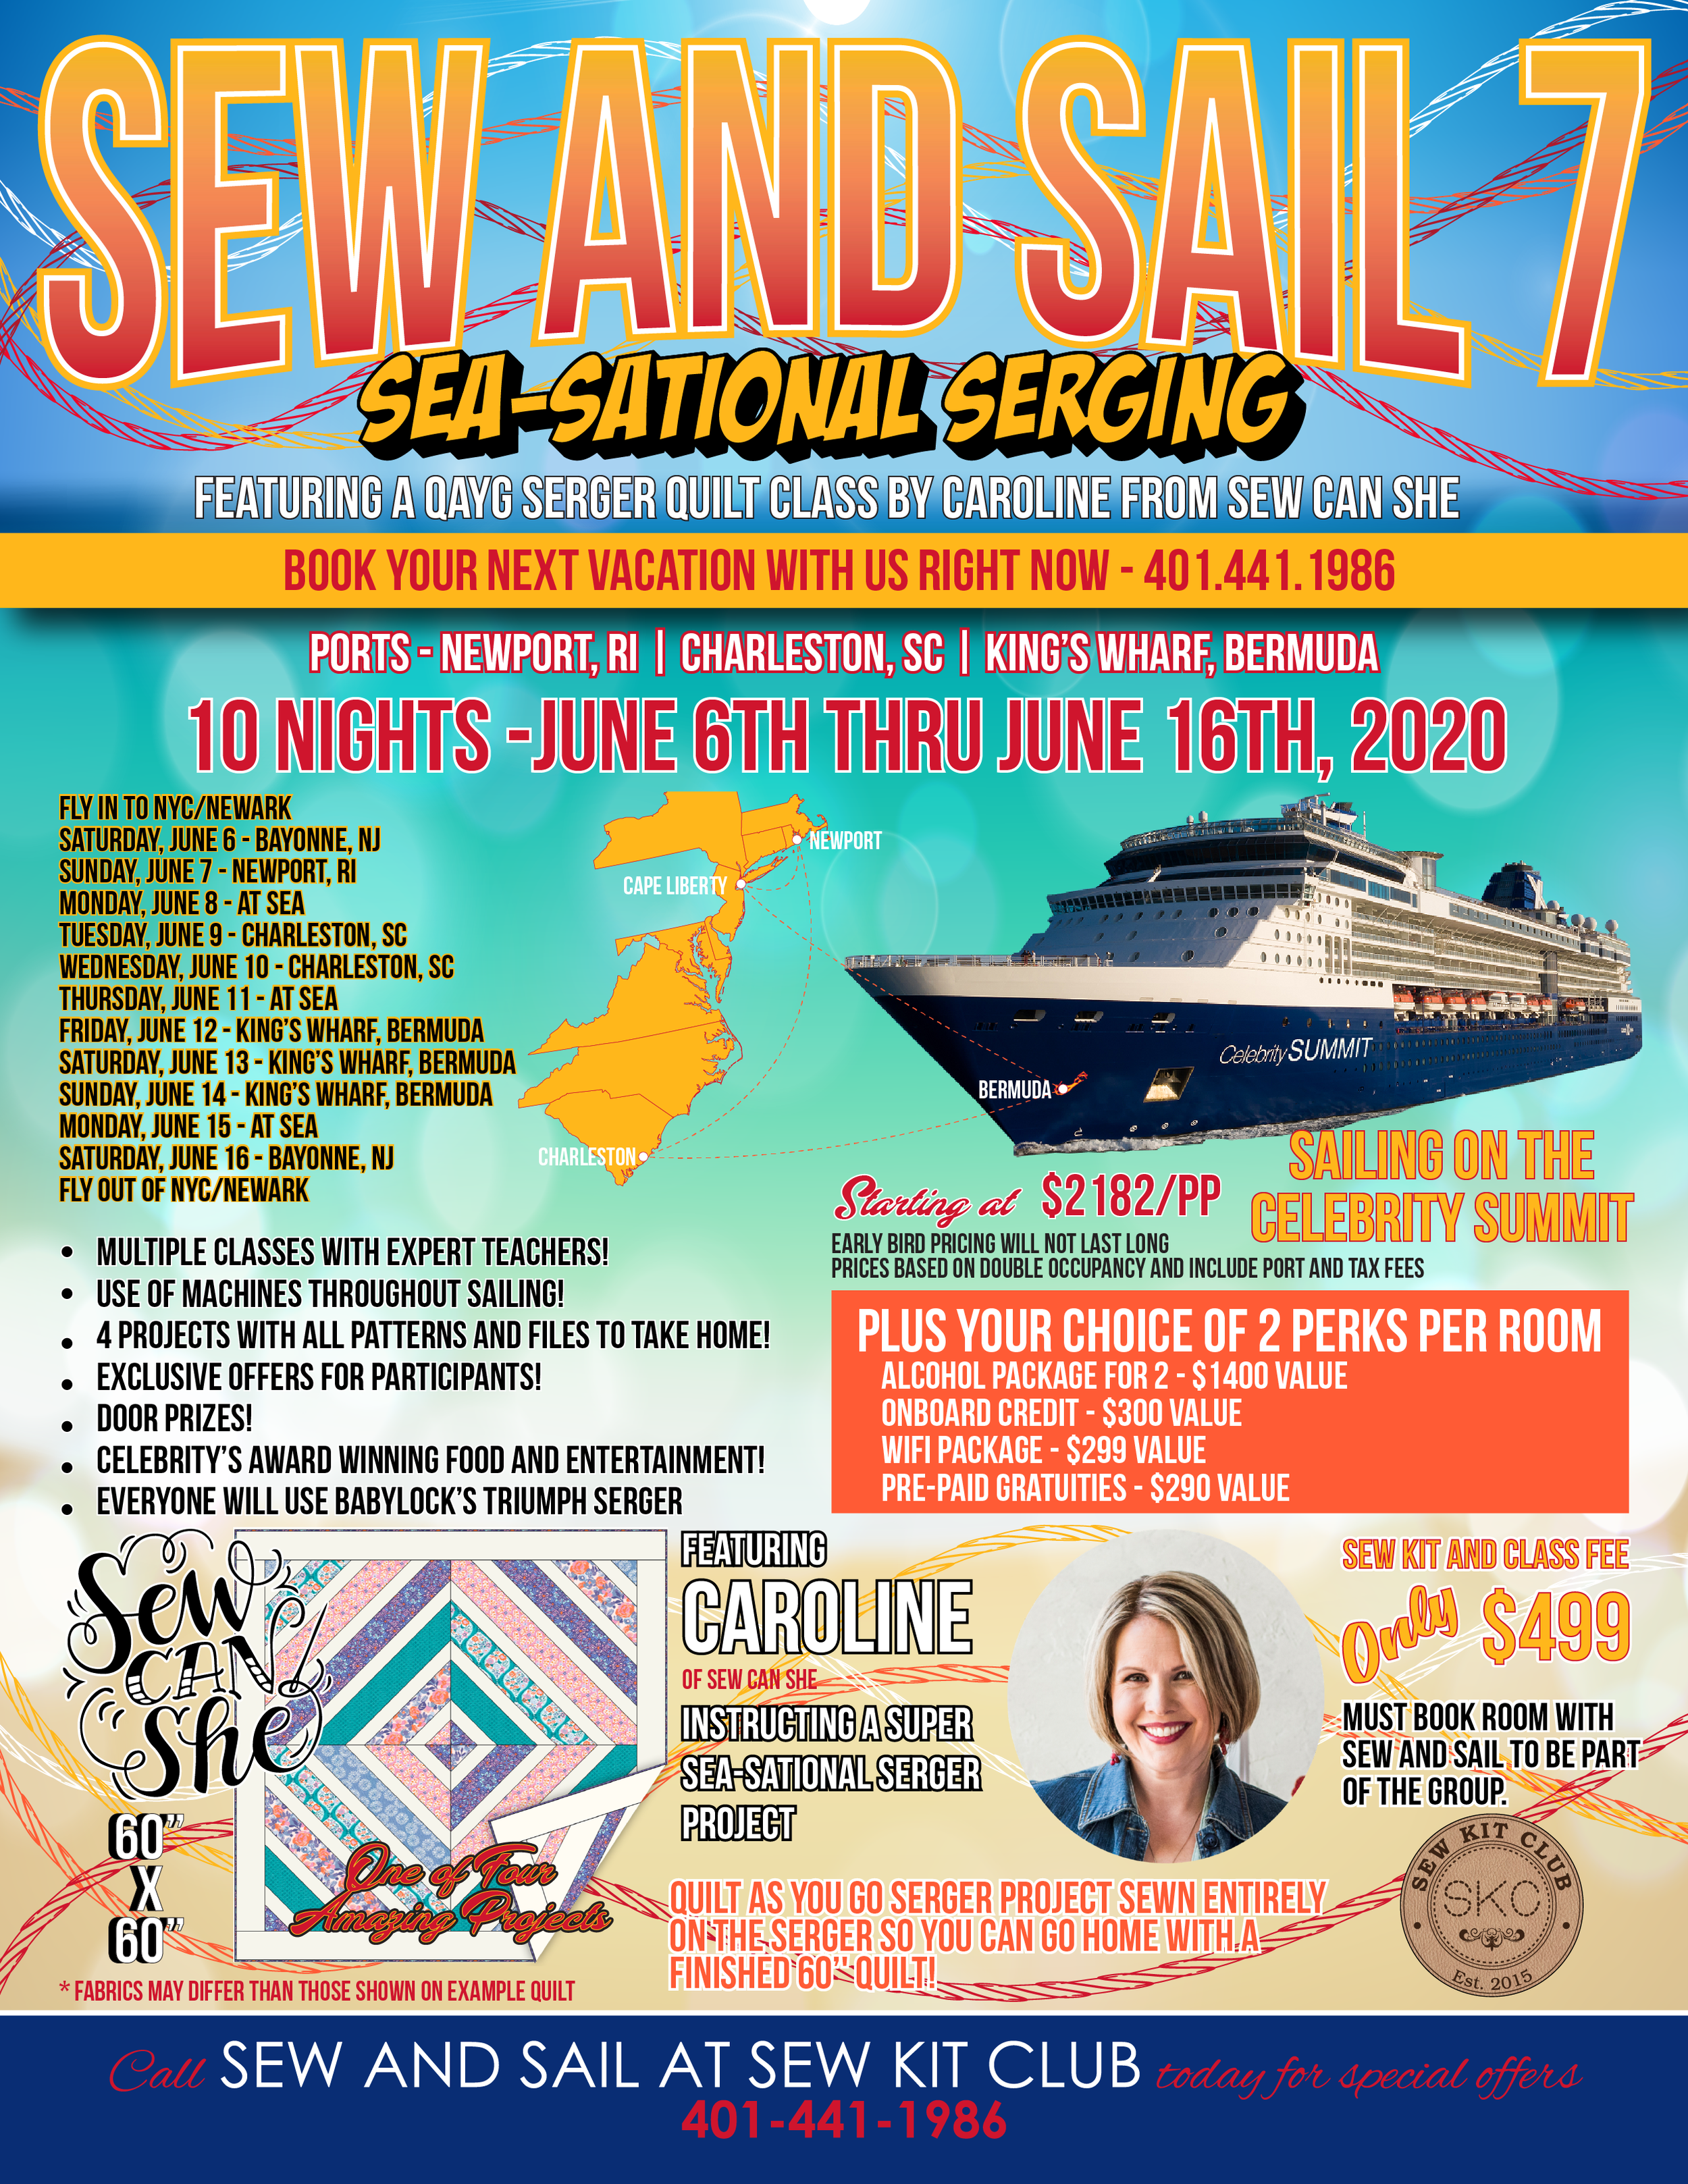 sew and sail 7 flyer.png